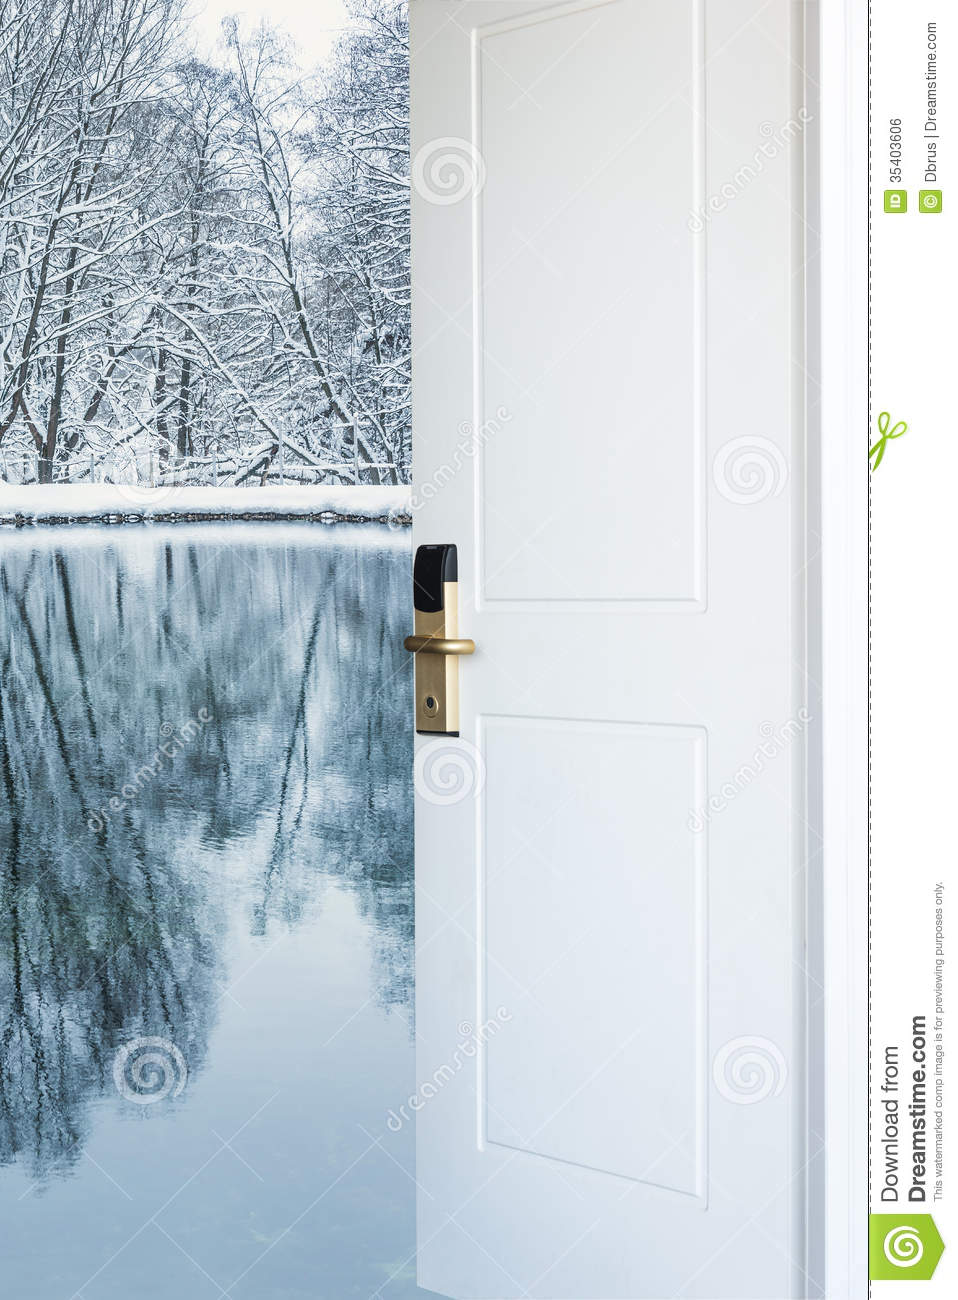 Royalty-Free Stock Photo & Open Door And A Winter Forest Stock Photo - Image: 35403606 pezcame.com